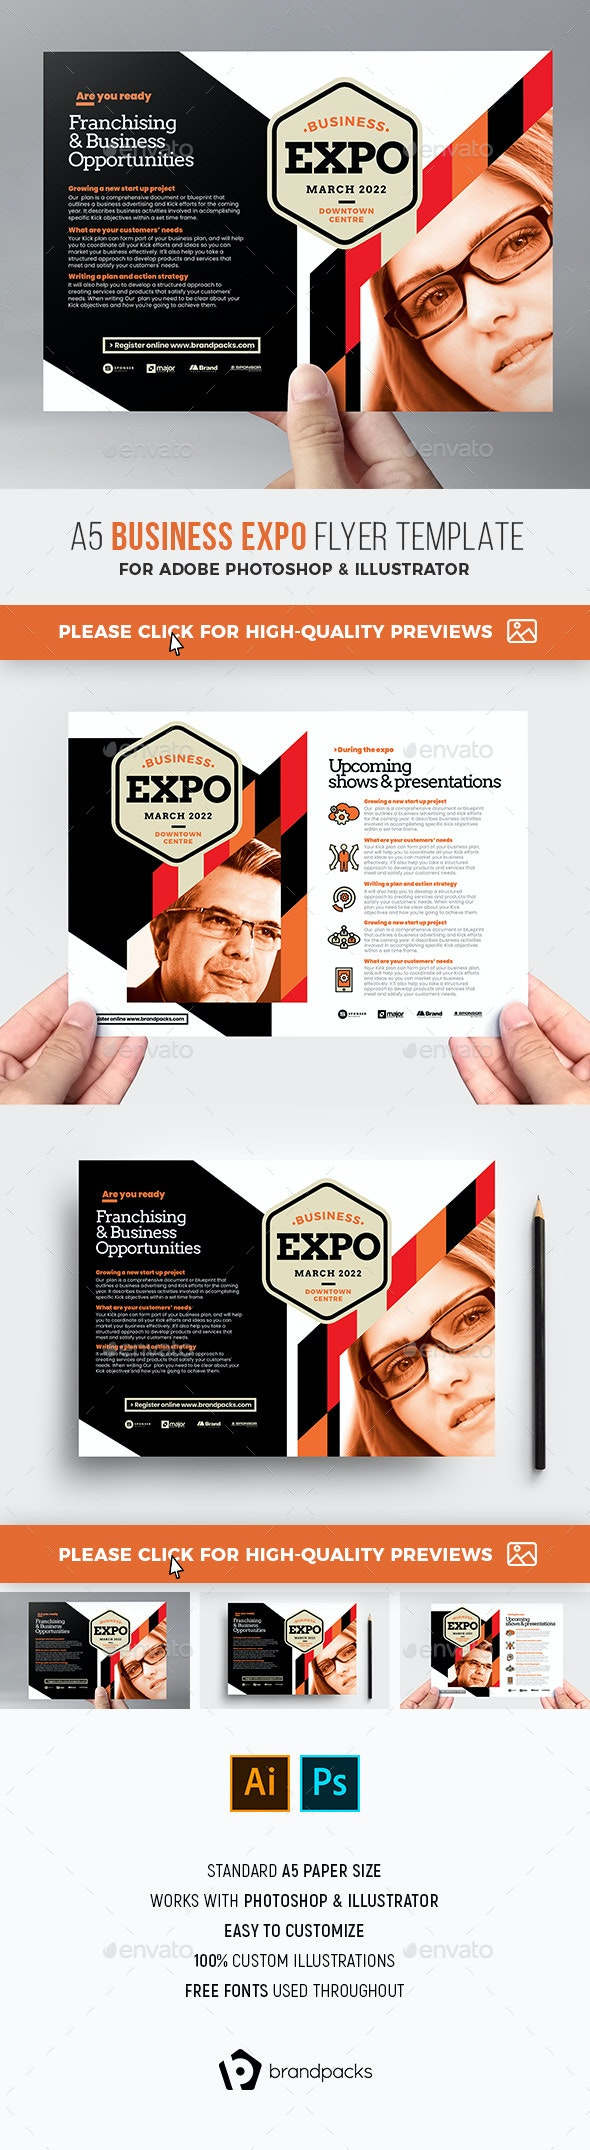 Business Expo Flyer Template - Corporate Flyers